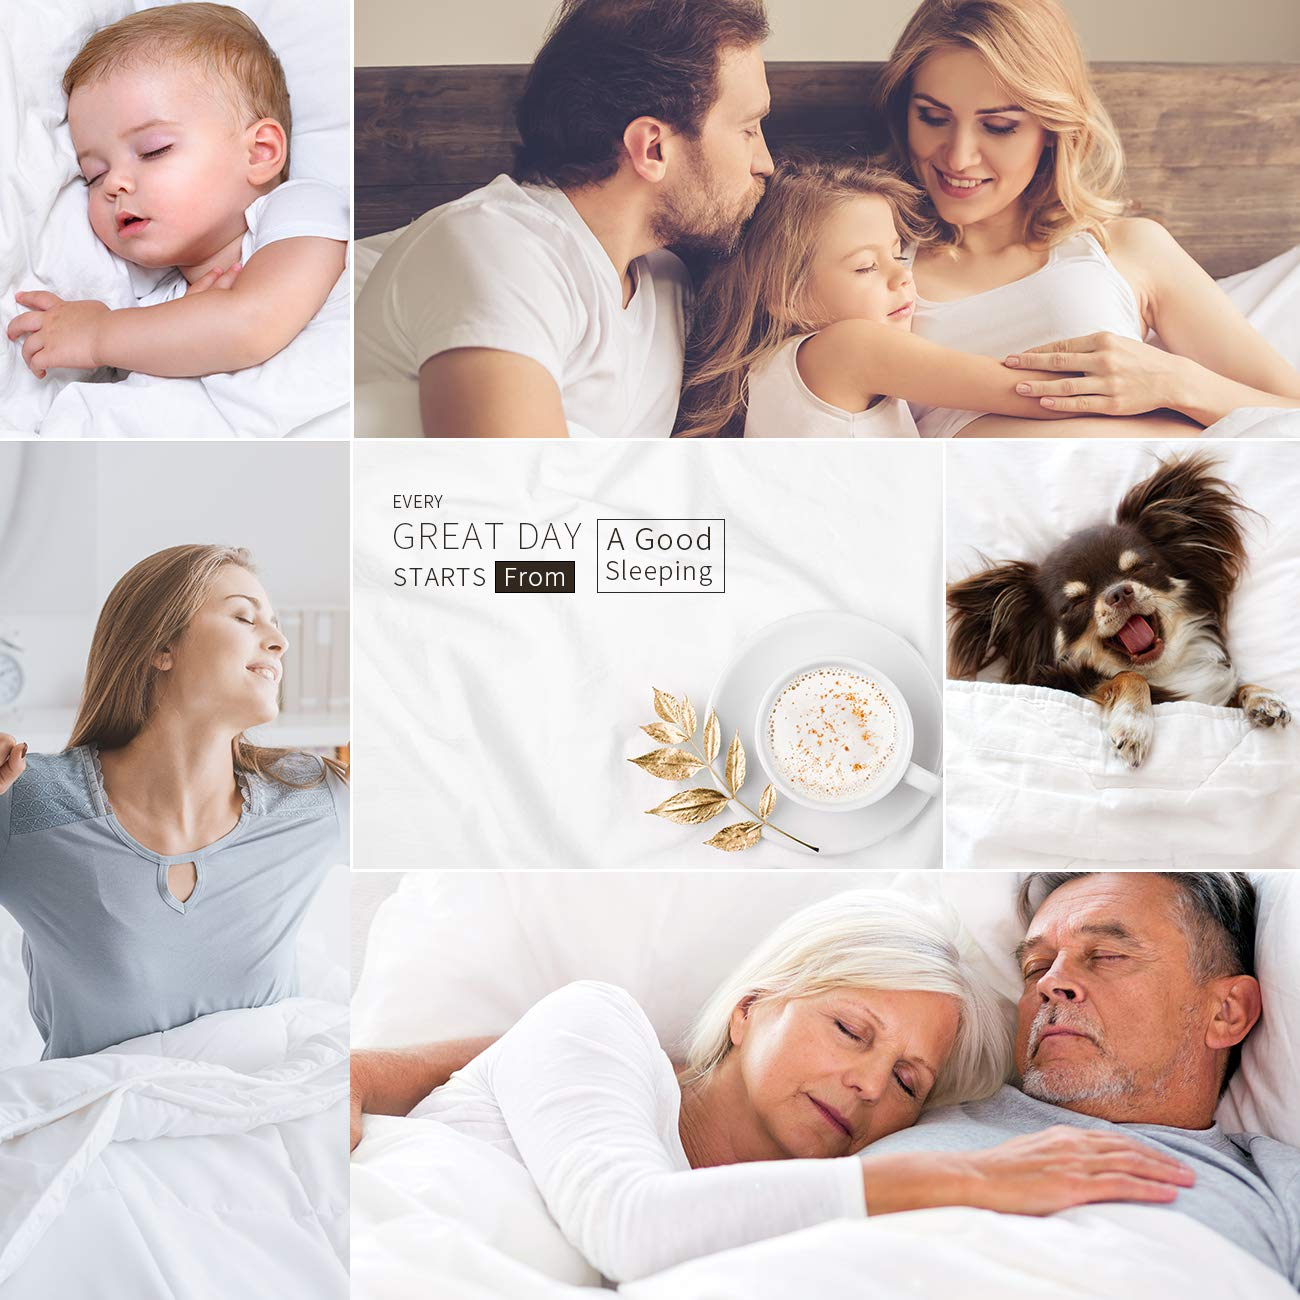 EcoMozz King Comforter with Corner Tabs - All Season Down Alternative Comforter - Soft Warm Quilted Duvet Insert - Hypoallergenic Fluffy Hotel Collection - White by EcoMozz (Image #7)